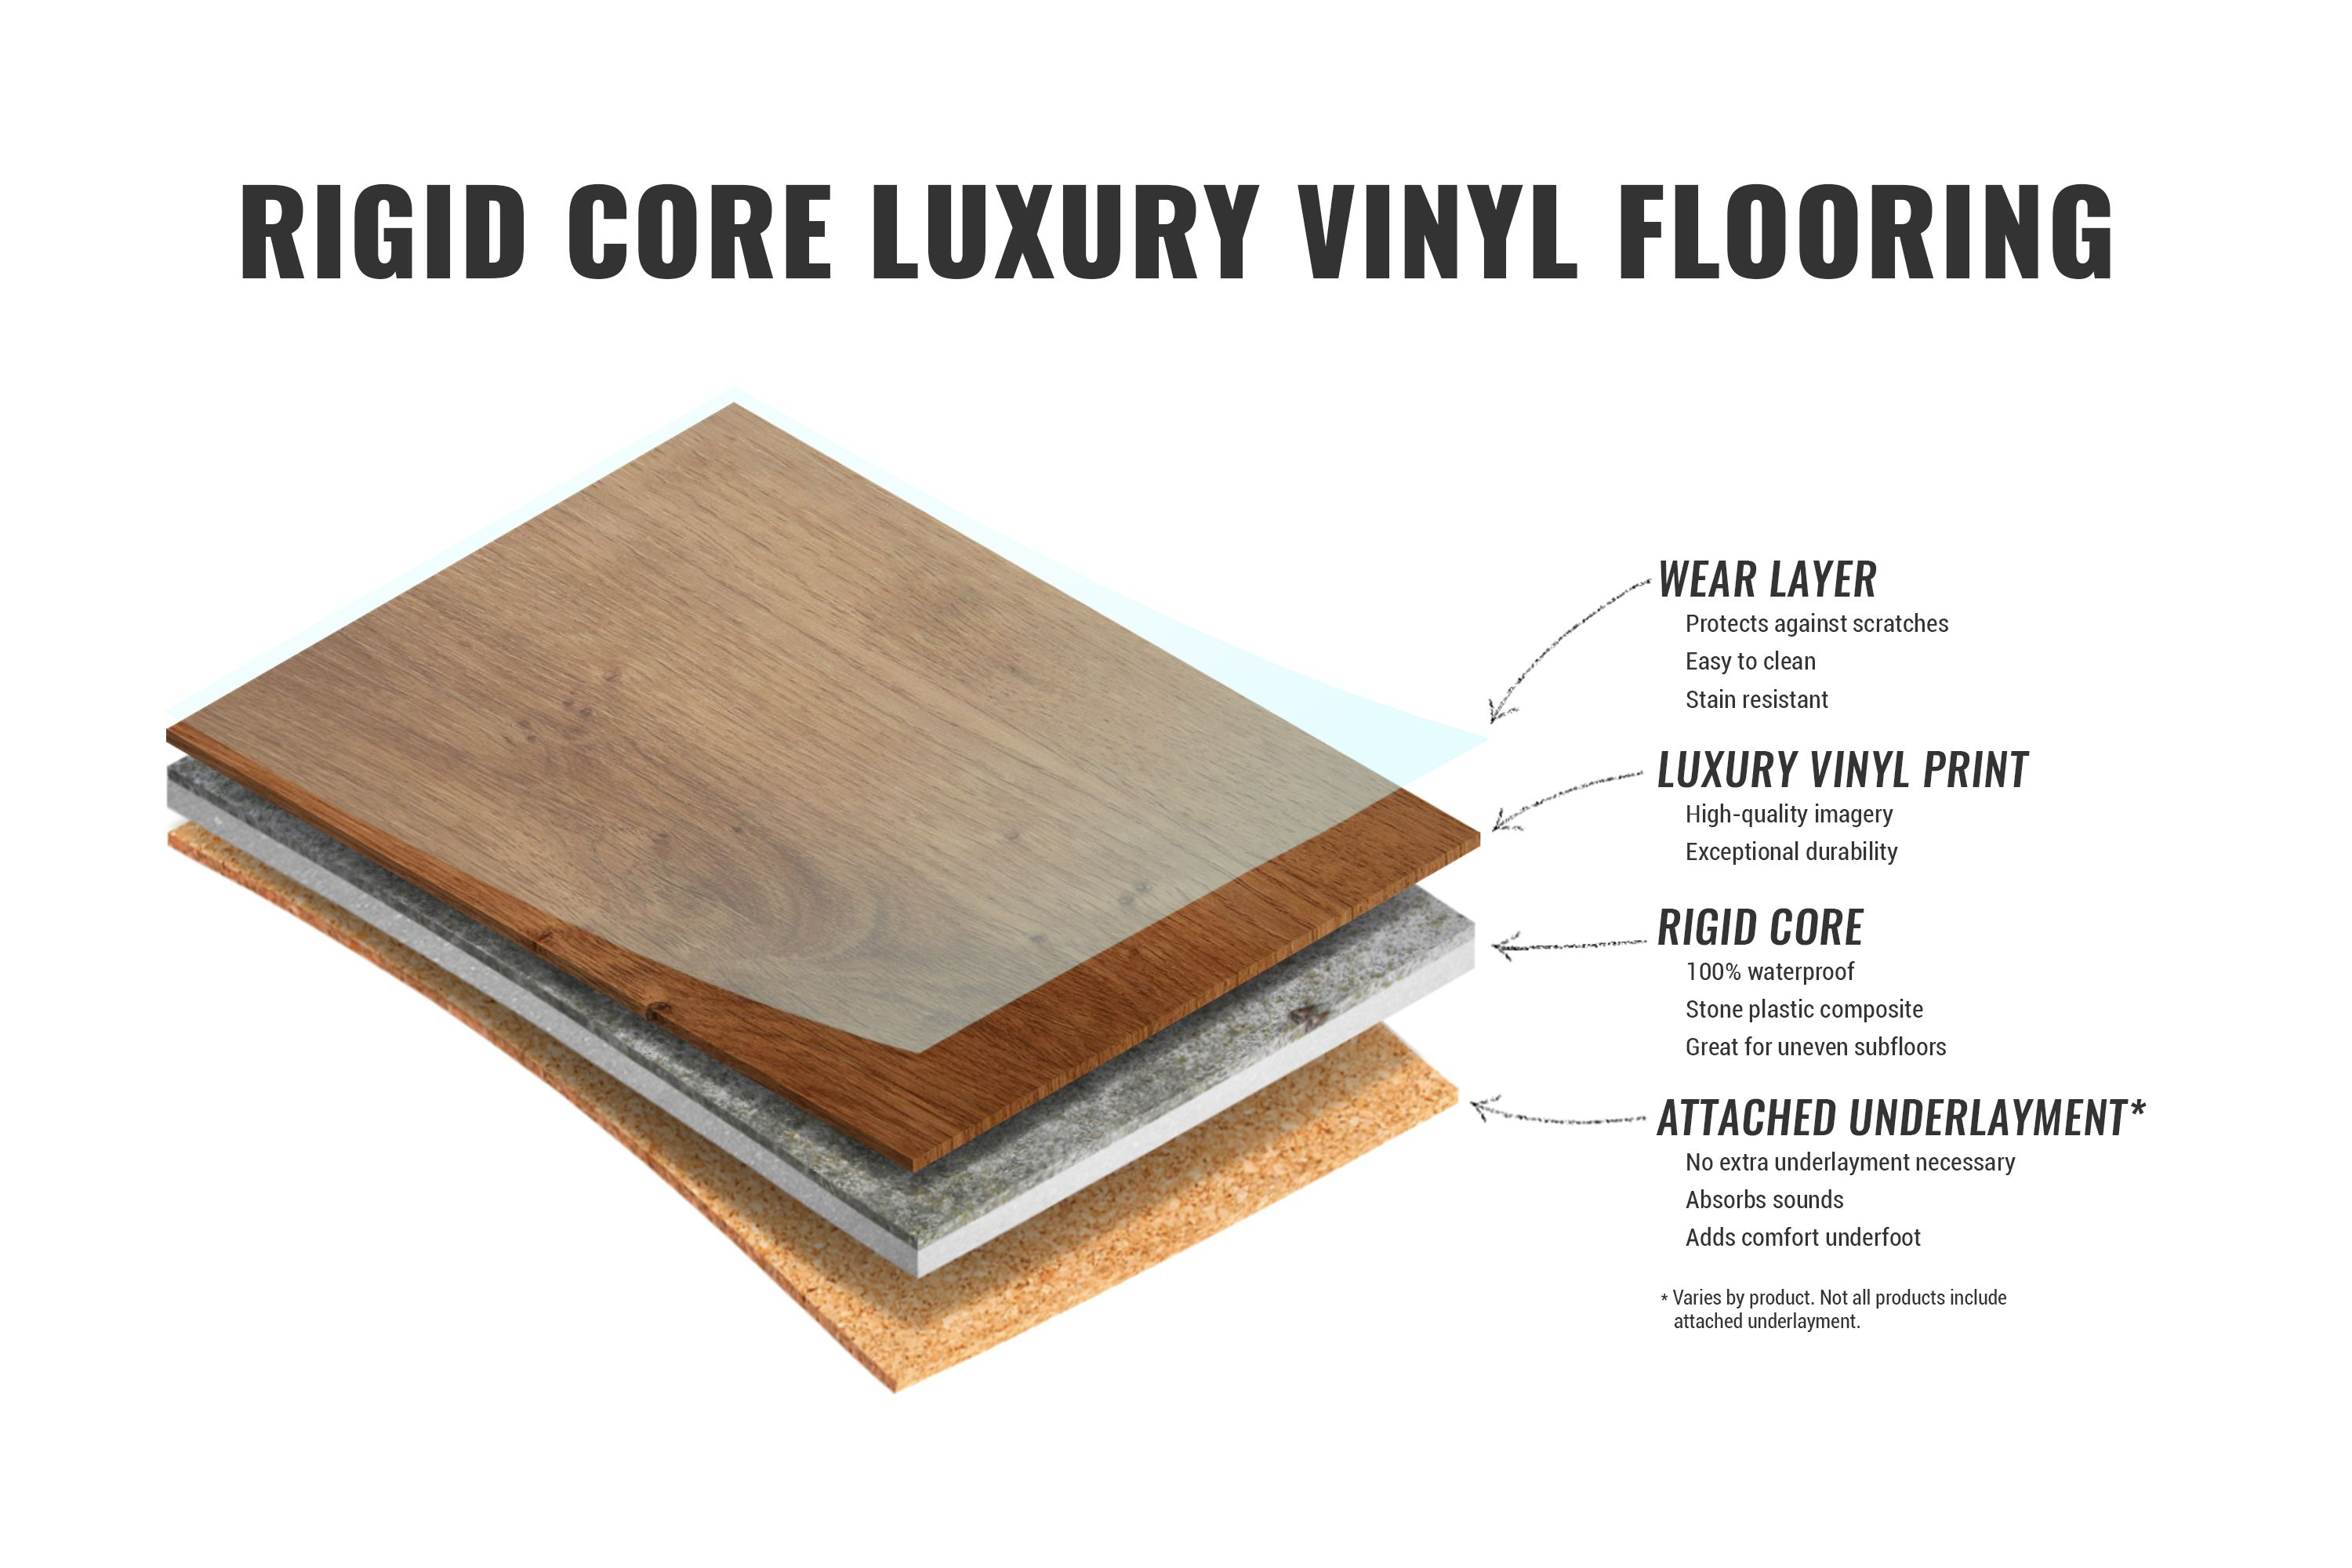 Spc Rigid Core Luxury Vinyl Flooring Buying Guide Flooring Inc Luxury Vinyl Flooring Vinyl Flooring Luxury Vinyl